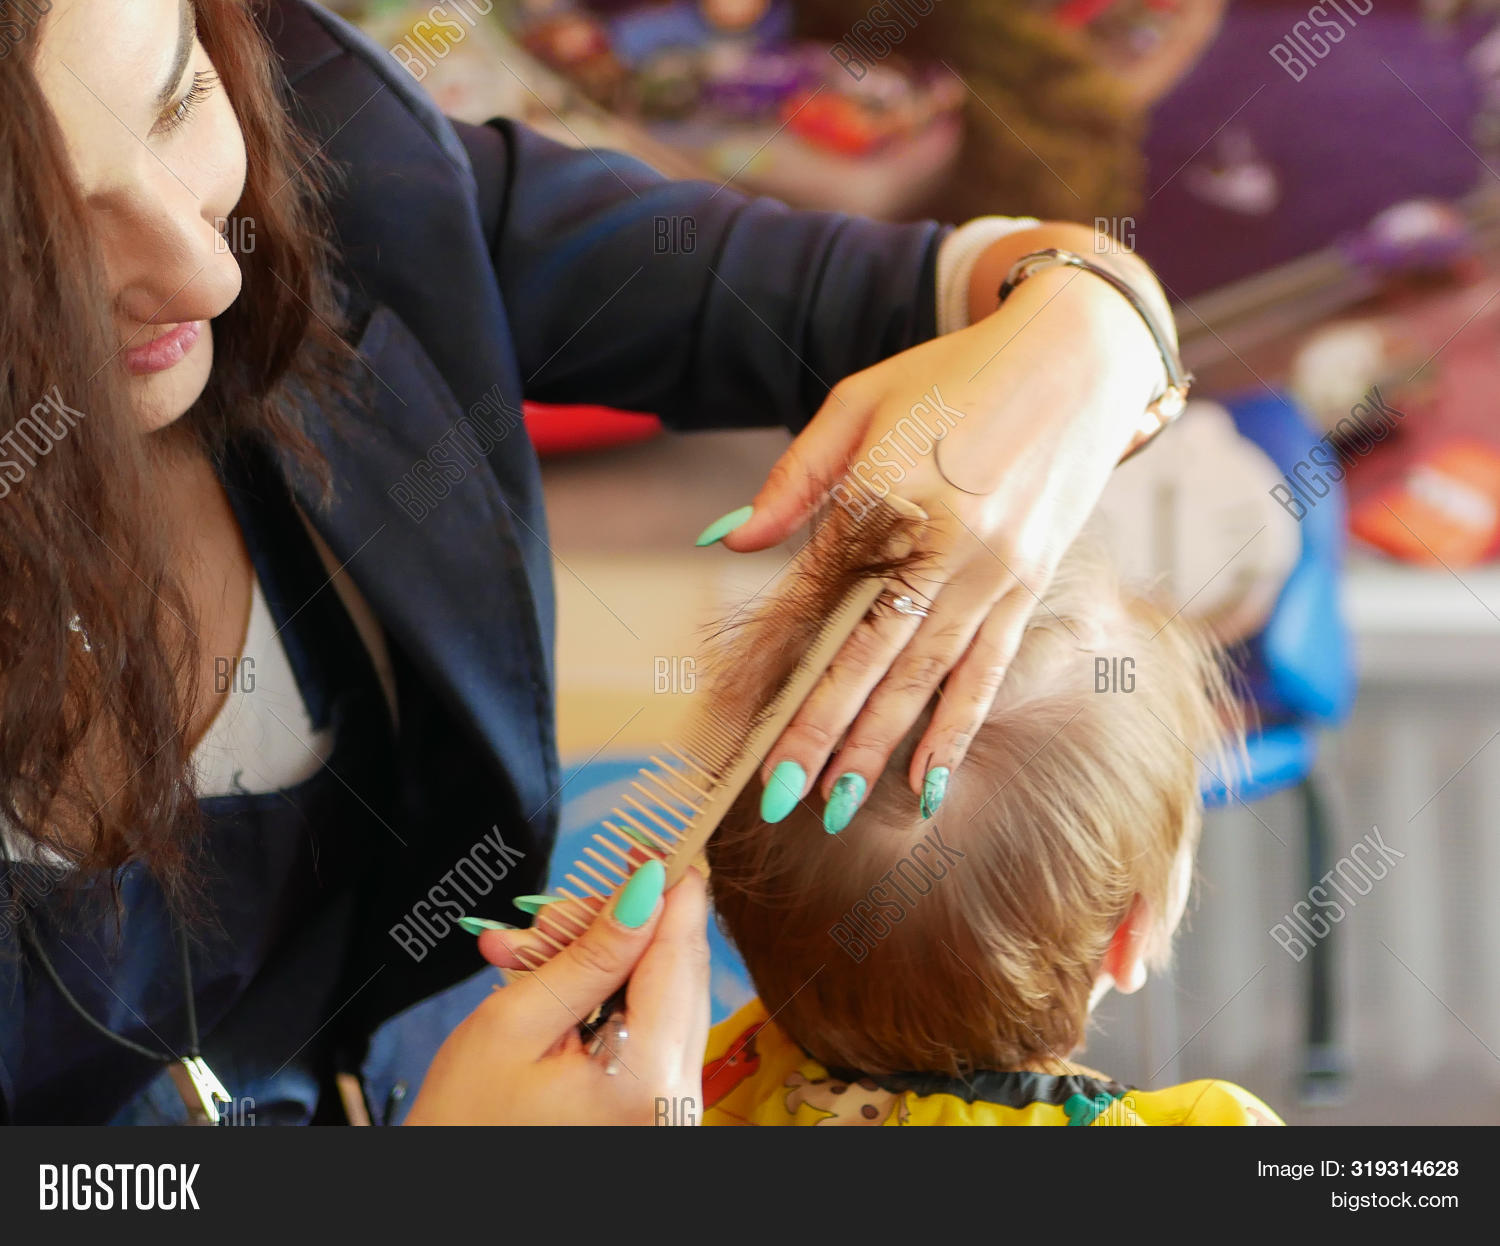 First Baby Haircut Image Photo Free Trial Bigstock